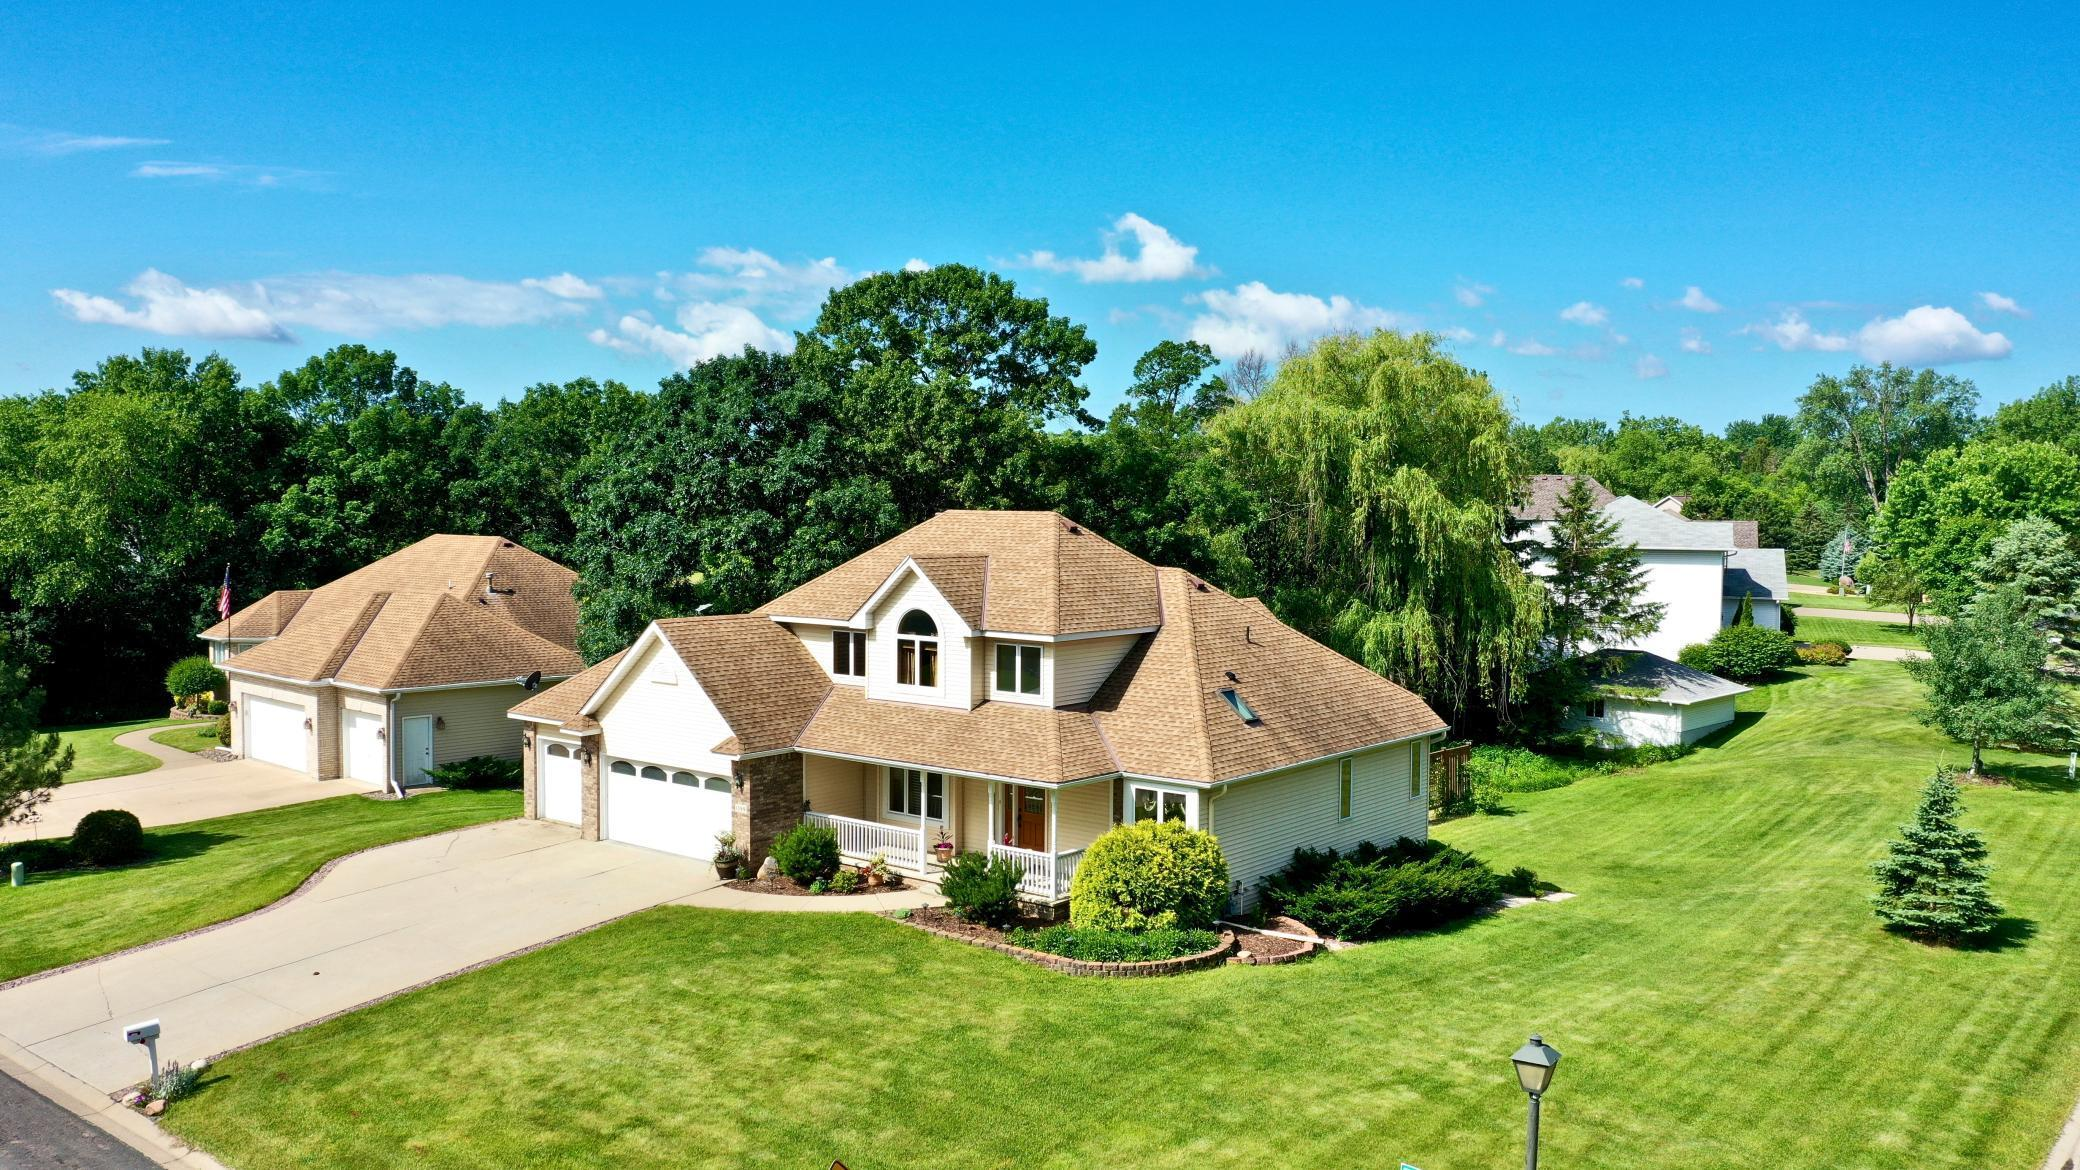 1399 Currie N Property Photo - Maplewood, MN real estate listing